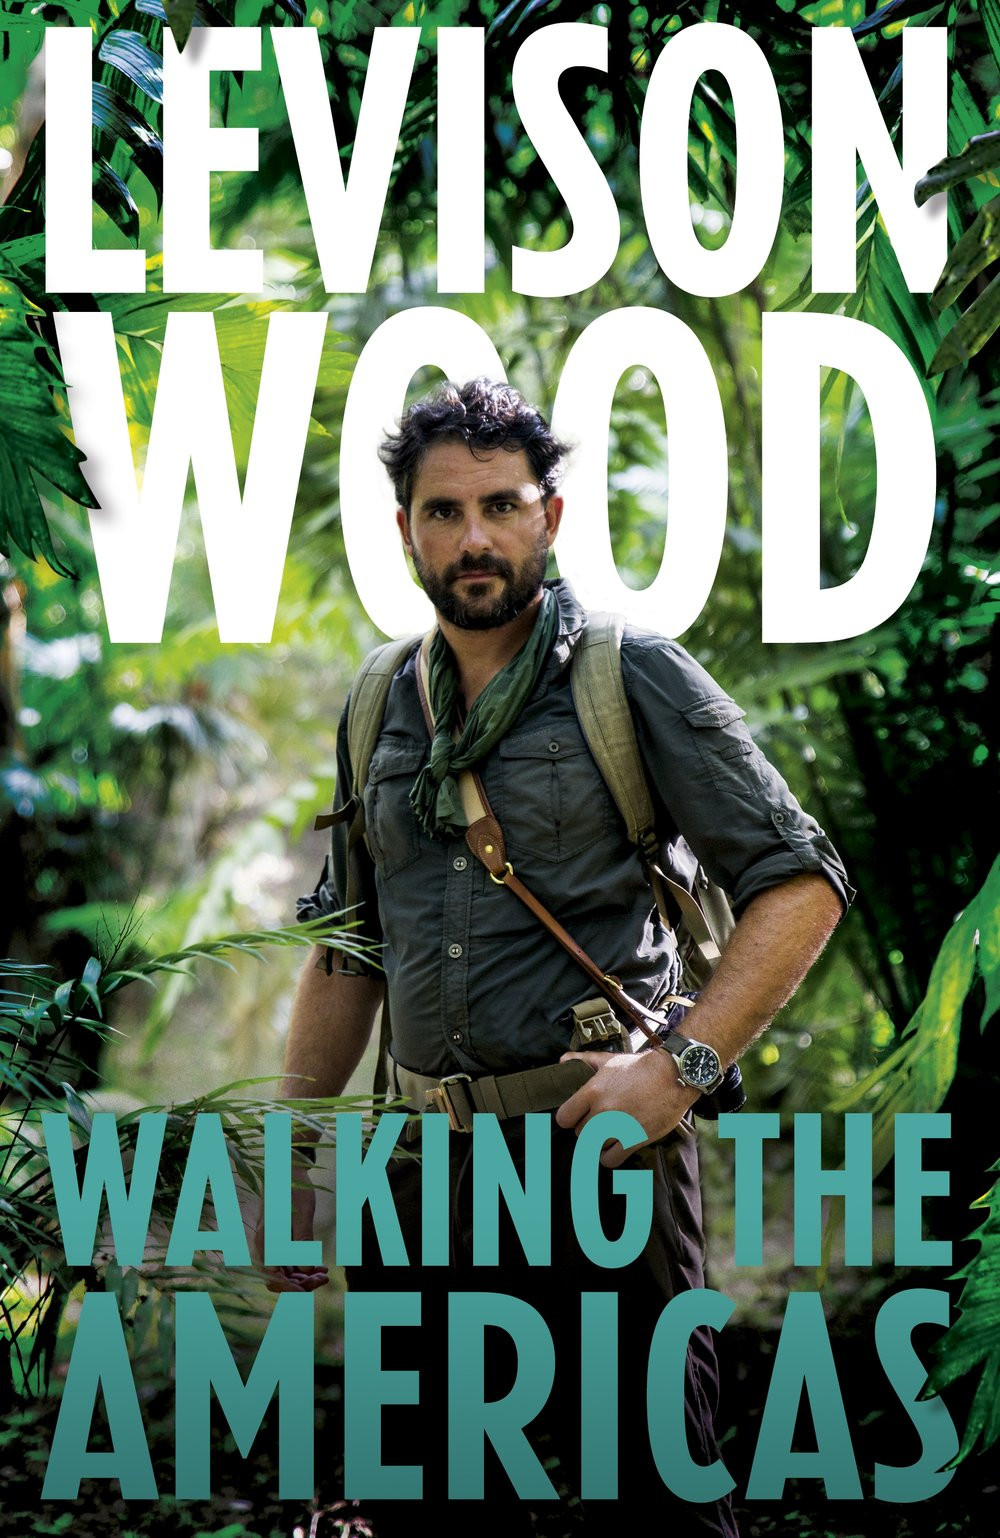 Walking The Americas will be published by Hodder & Stoughton in February 2017. Available to pre-order here. You can also pre-order a SIGNED copy when buying tickets to Lev's 2017 theatre tour here.